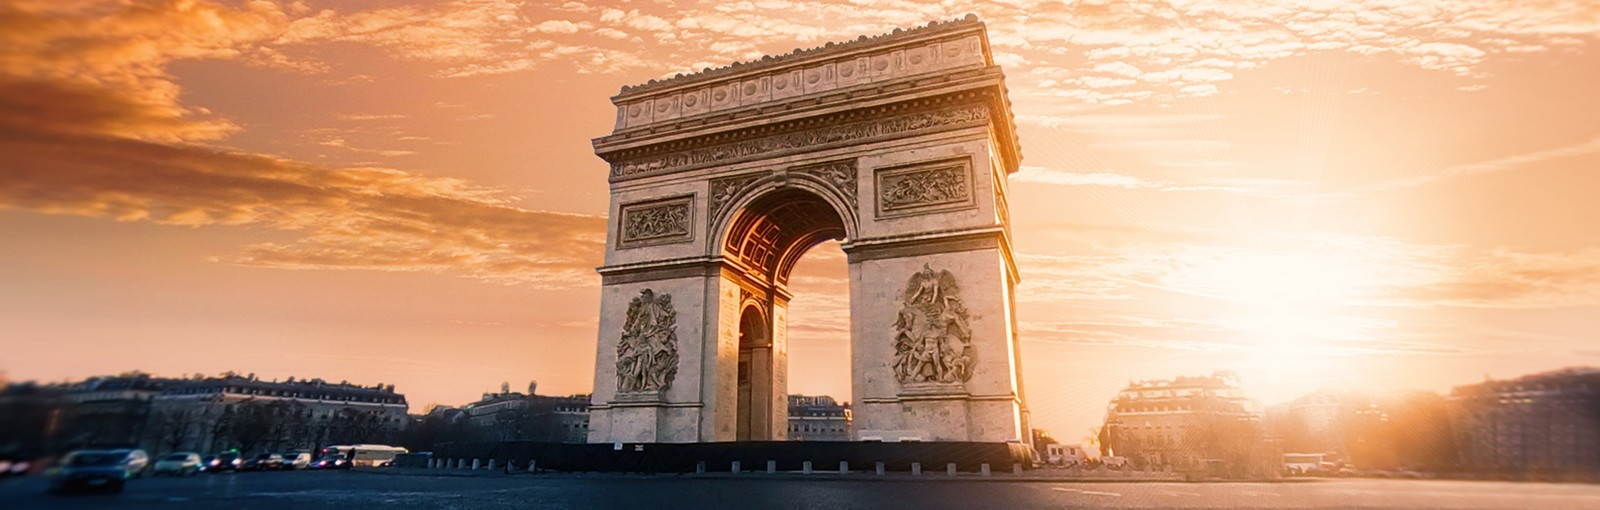 Tours Paris Package with 2 hotel nights - Paris Packages - Paris Tours